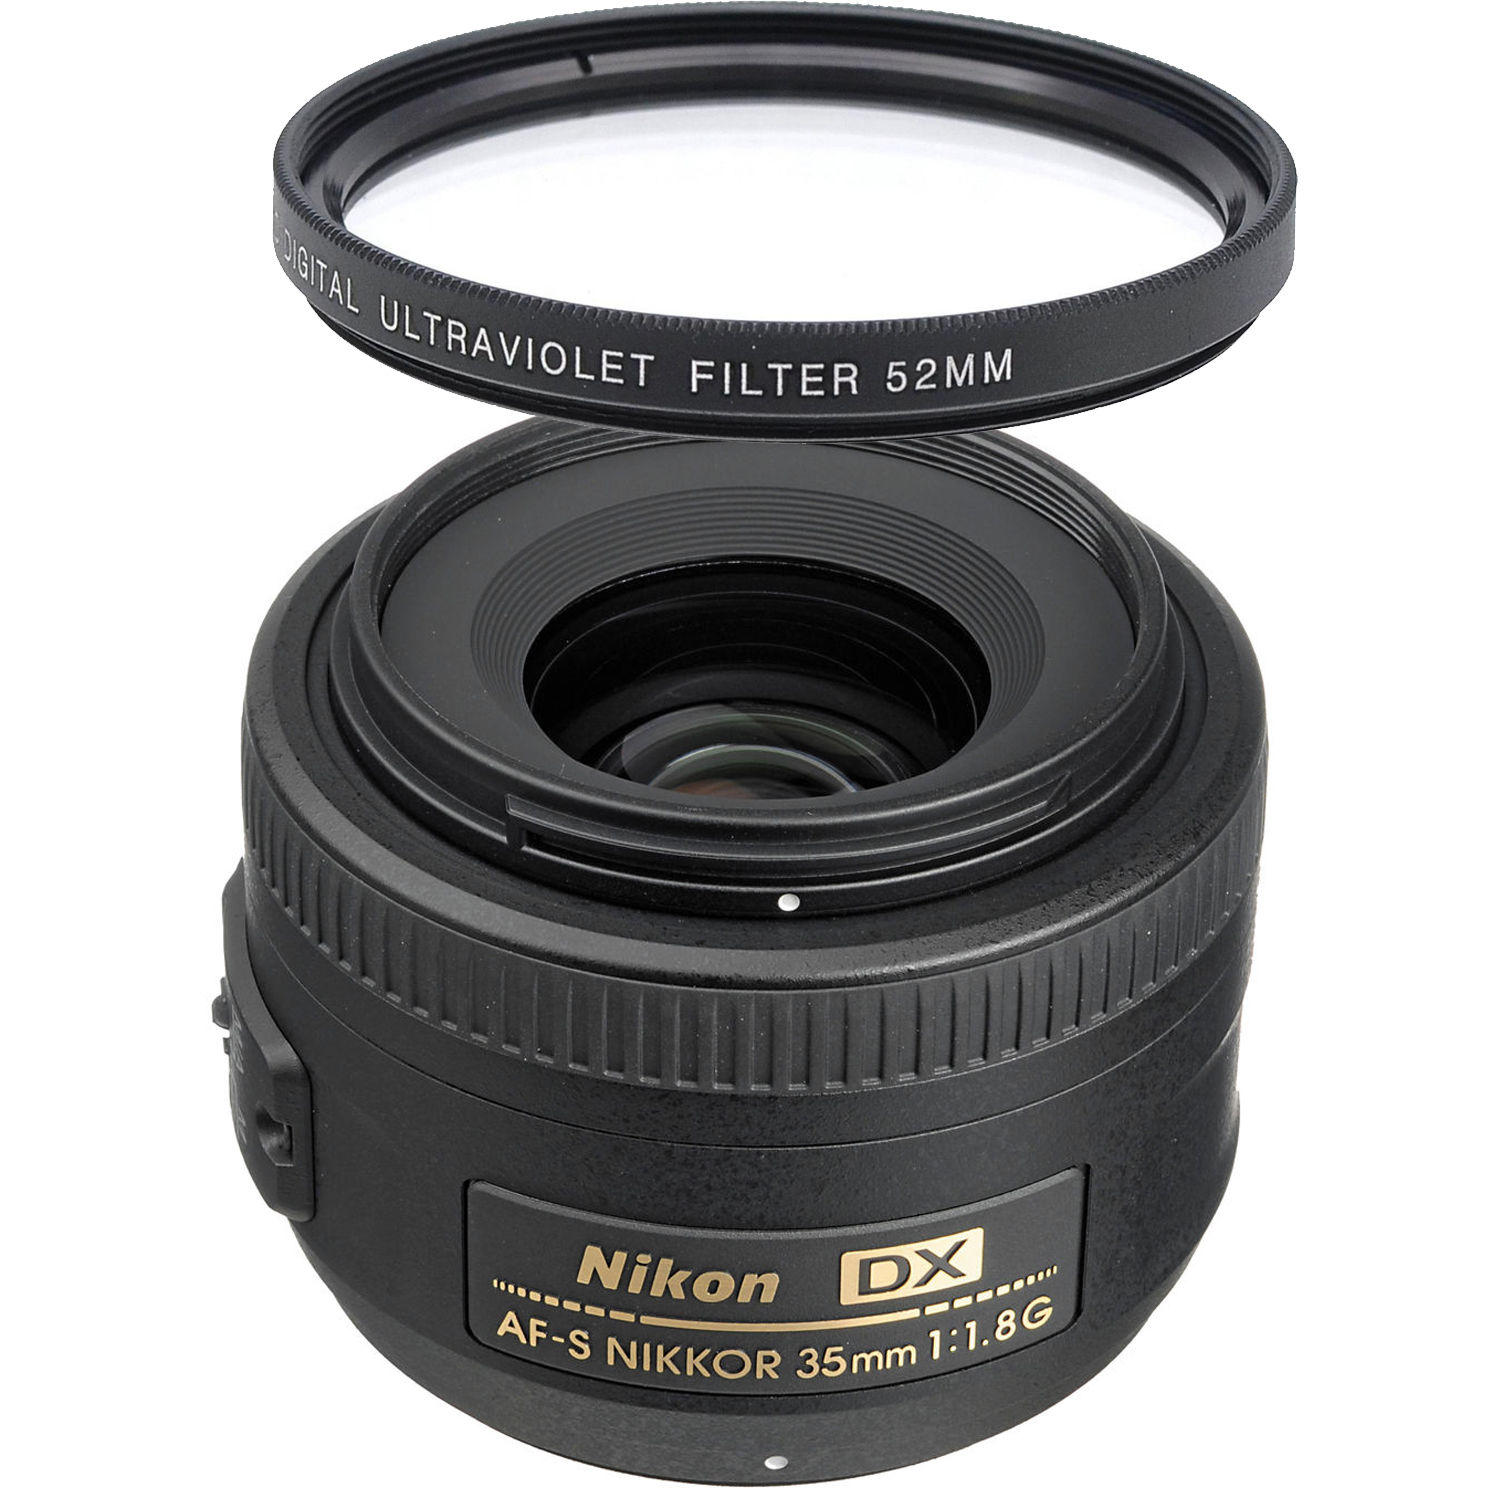 $149.00 Nikon AF-S Nikkor 35mm f/1.8G DX Lens + UV Filter